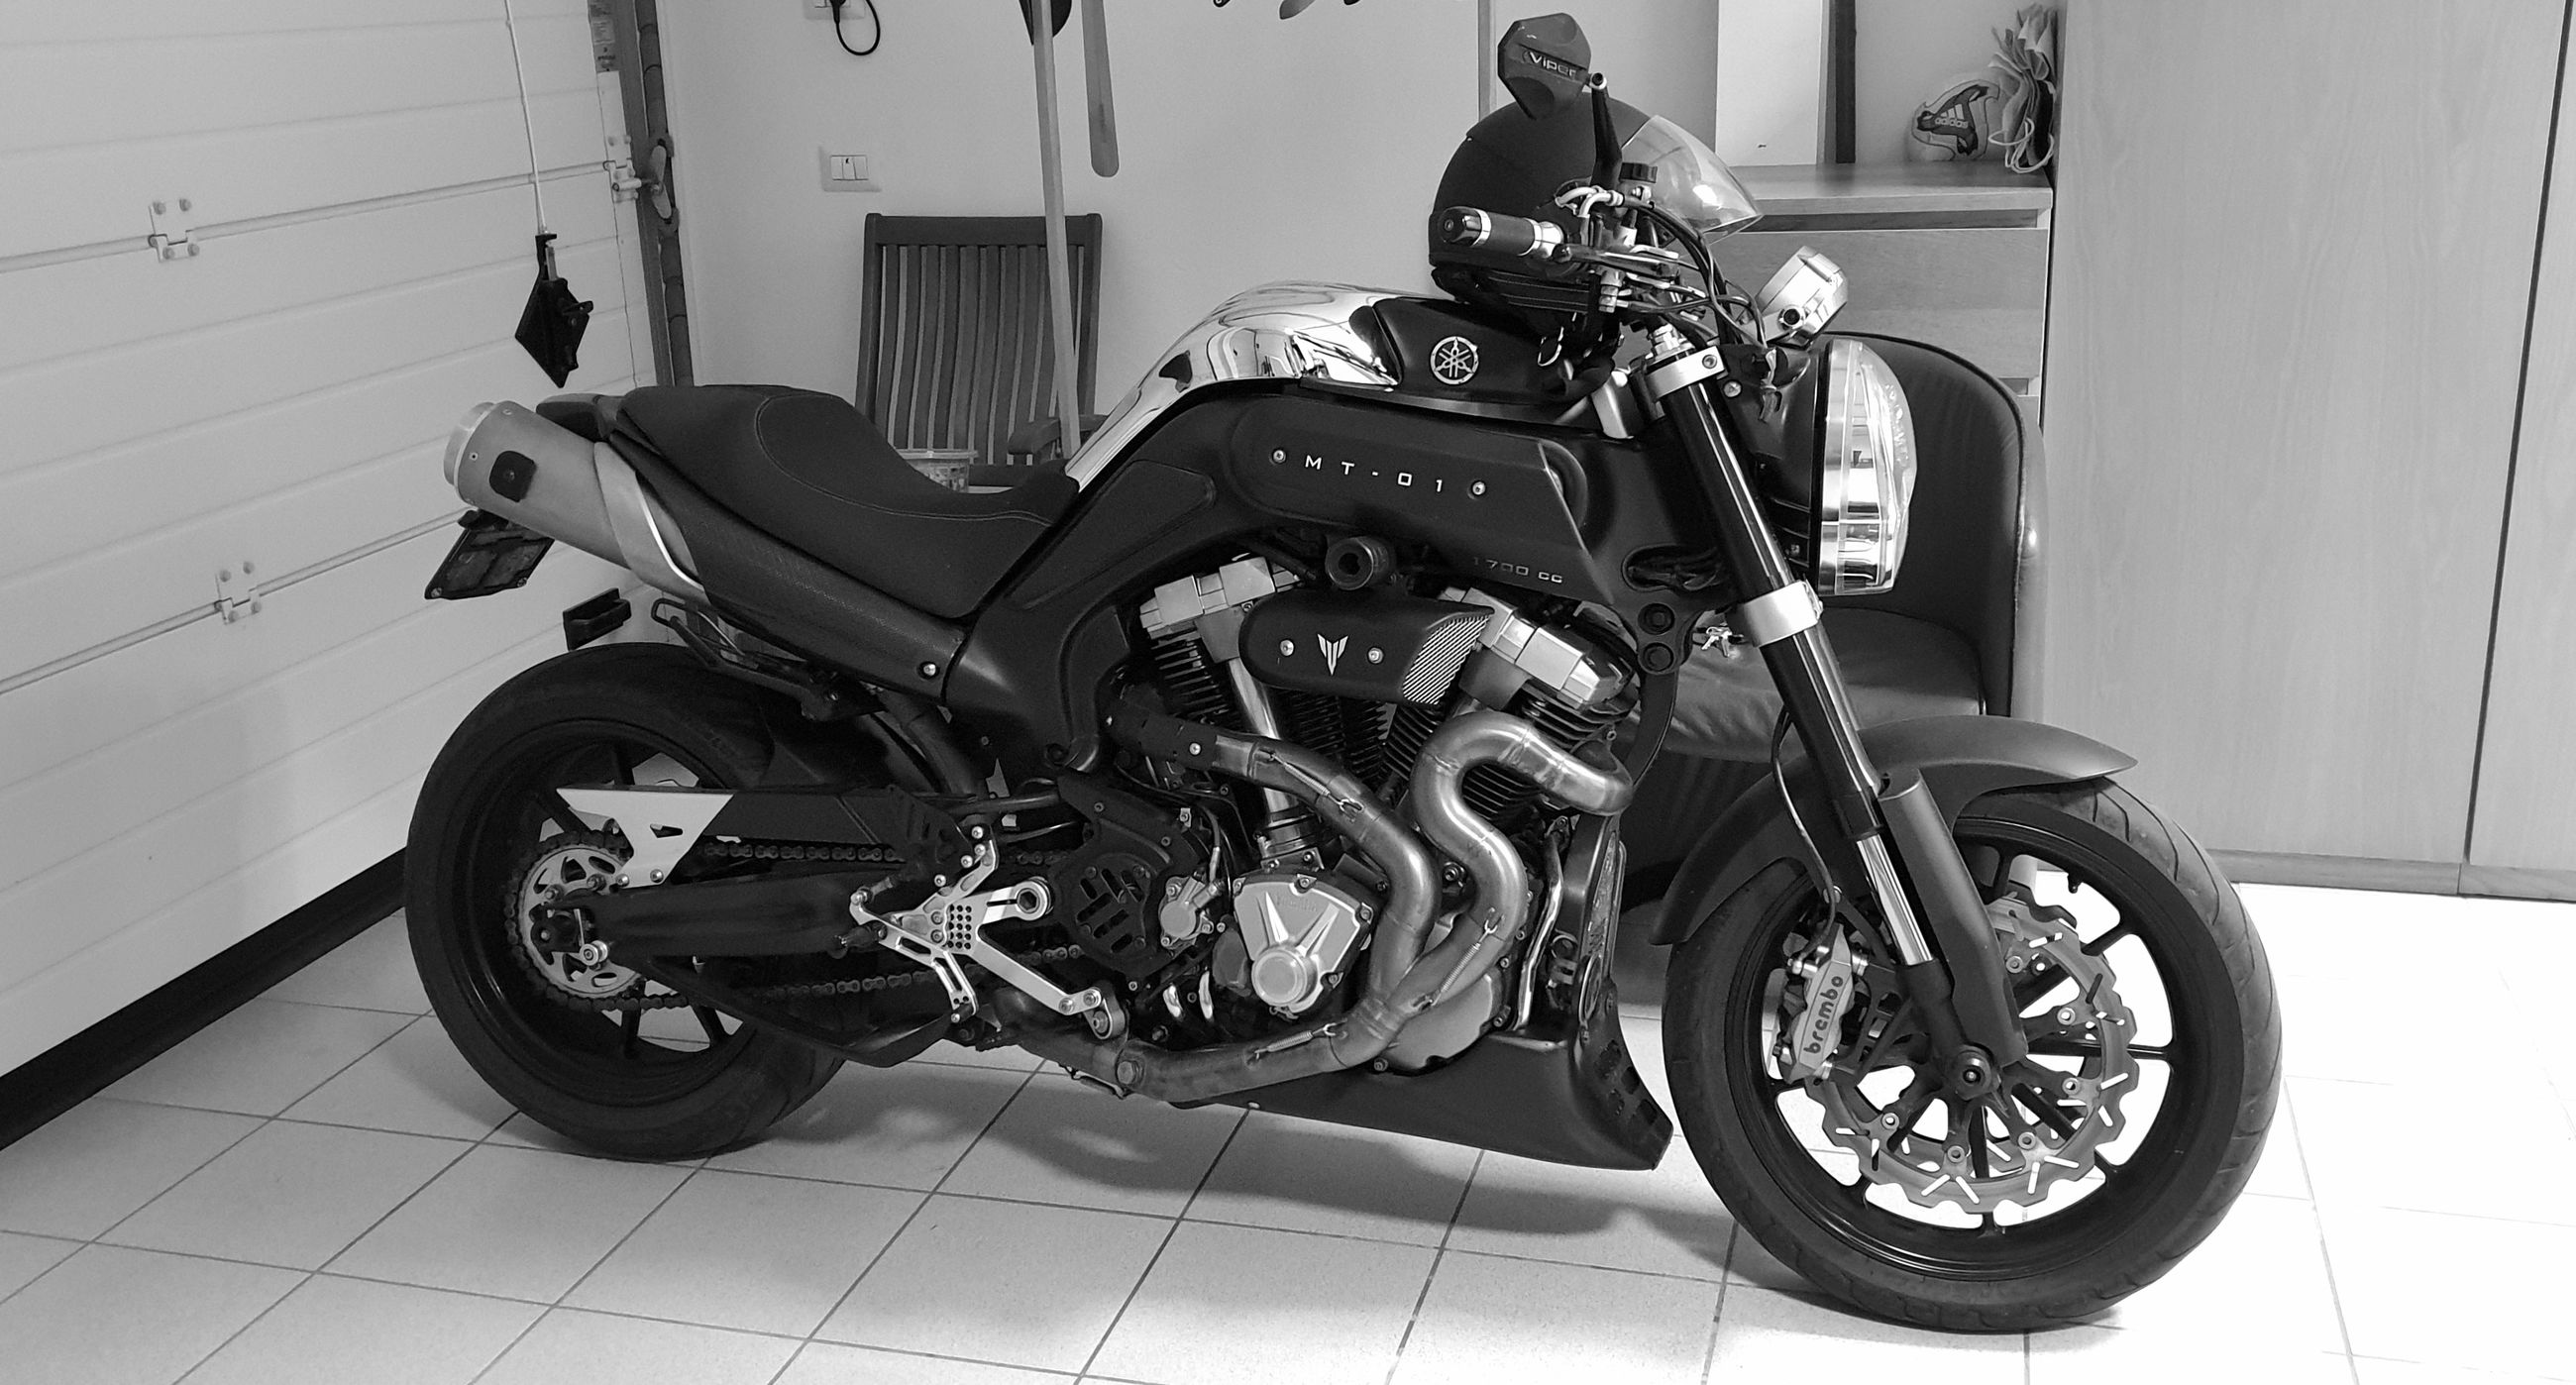 transportation, mode of transportation, motorcycle, land vehicle, scooter, one person, flooring, day, city, stationary, street, motor scooter, lifestyles, side view, wheel, indoors, tile, real people, tiled floor, luxury